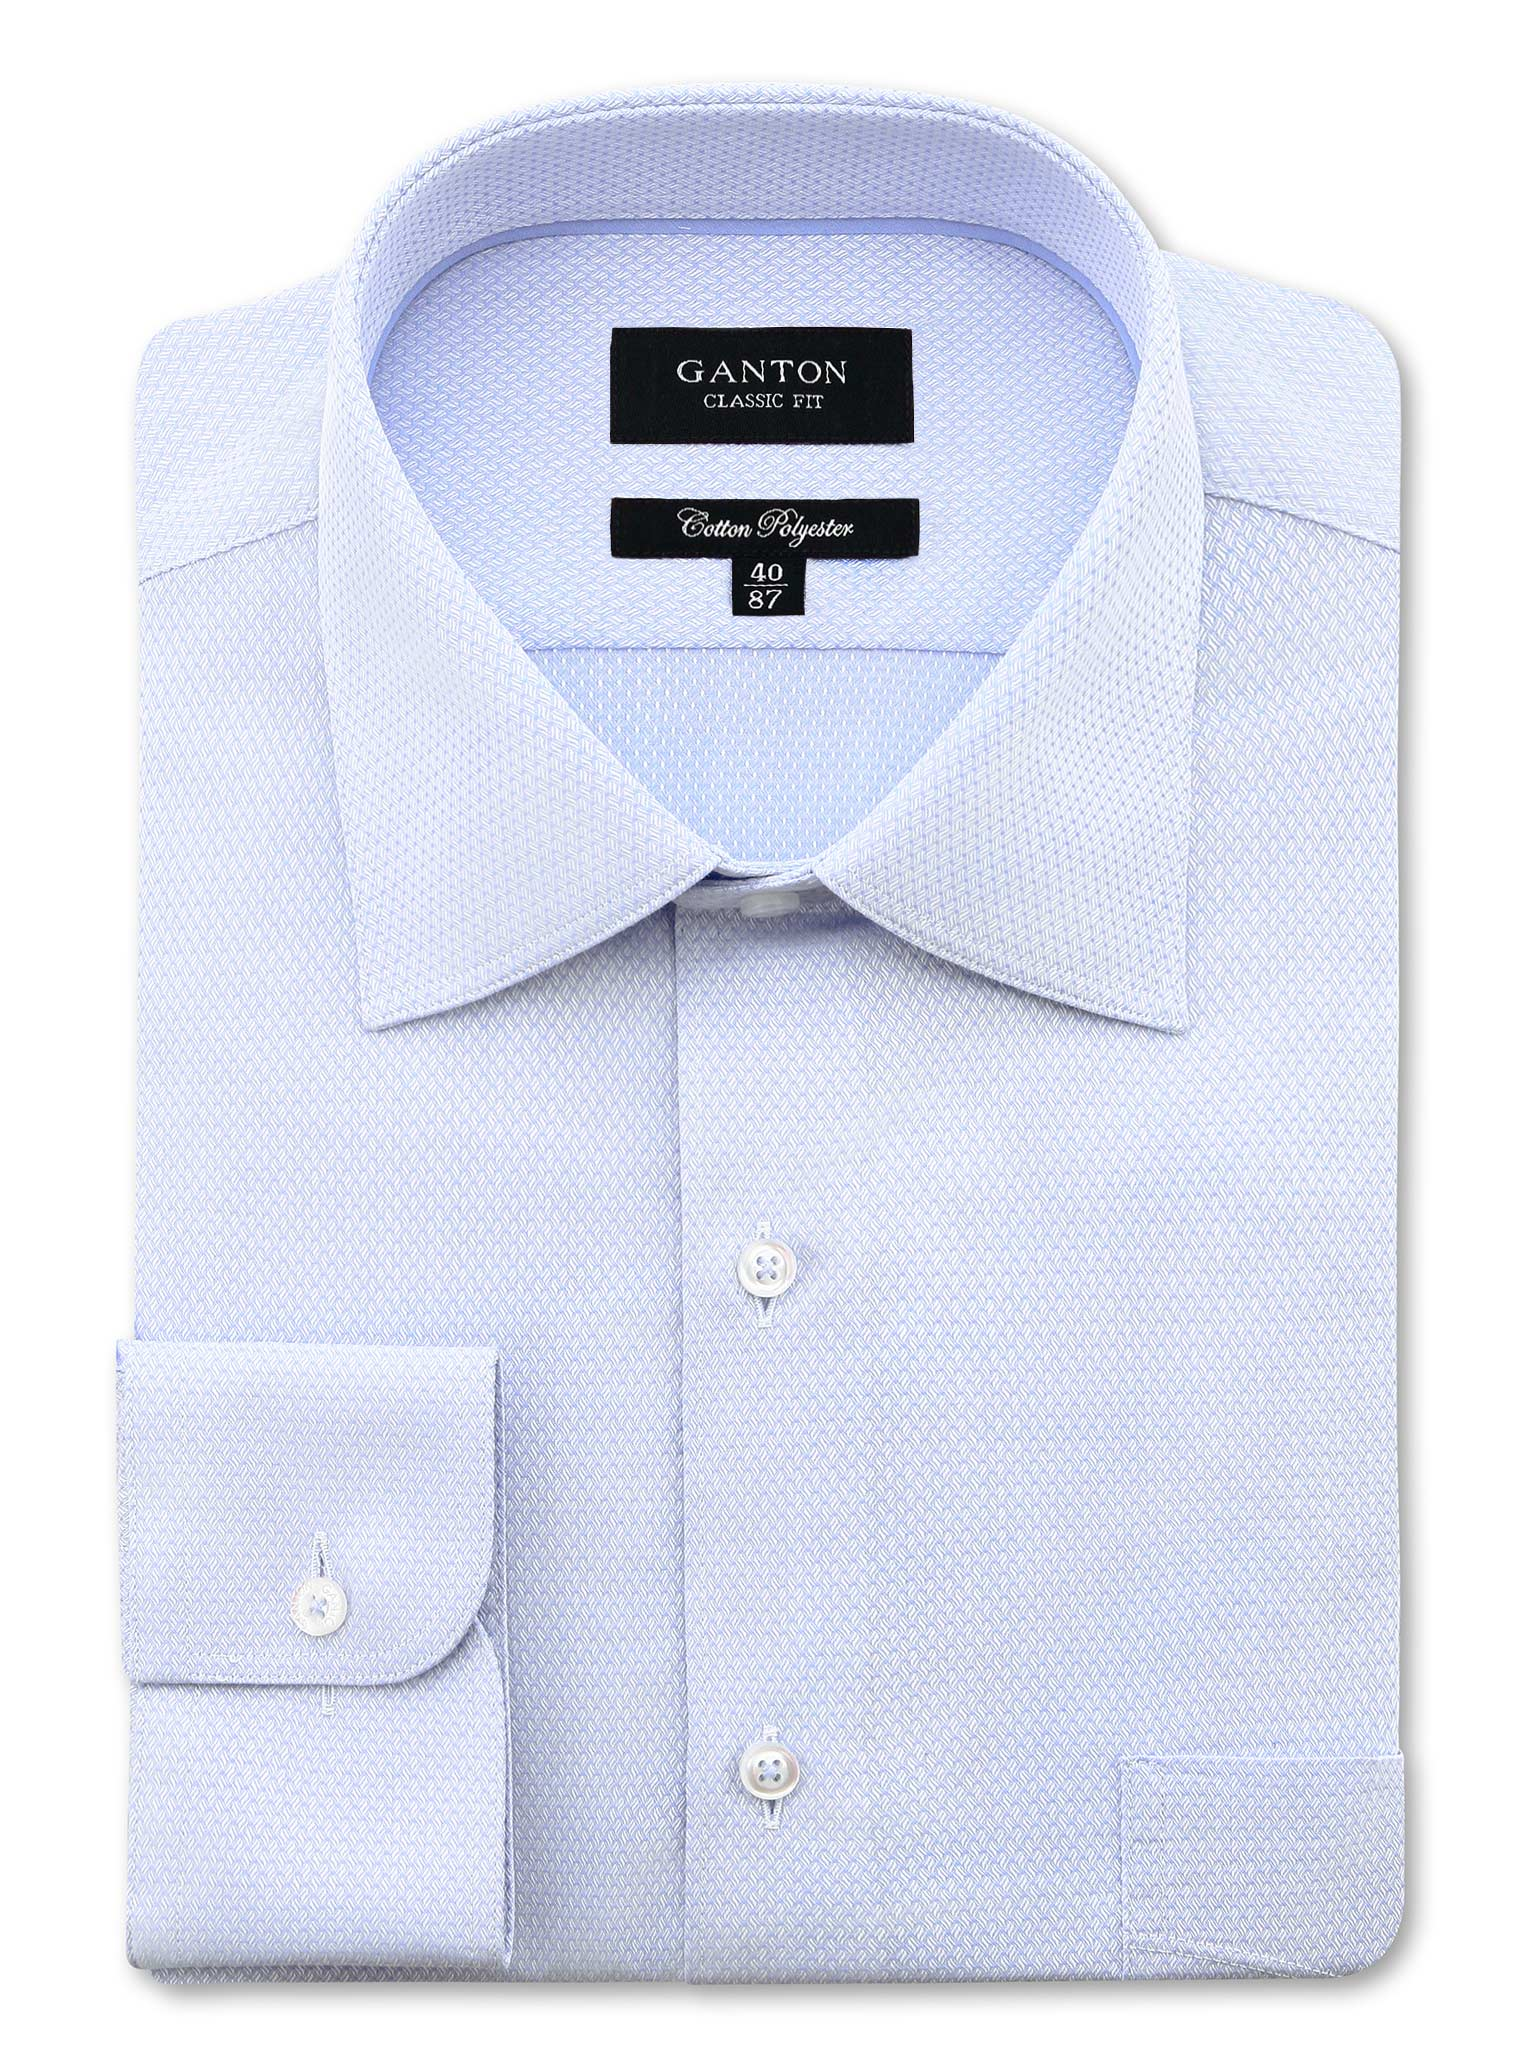 All Light Blue Textured Classic Fit Adam Cotton Polyester Easy Iron Shirt